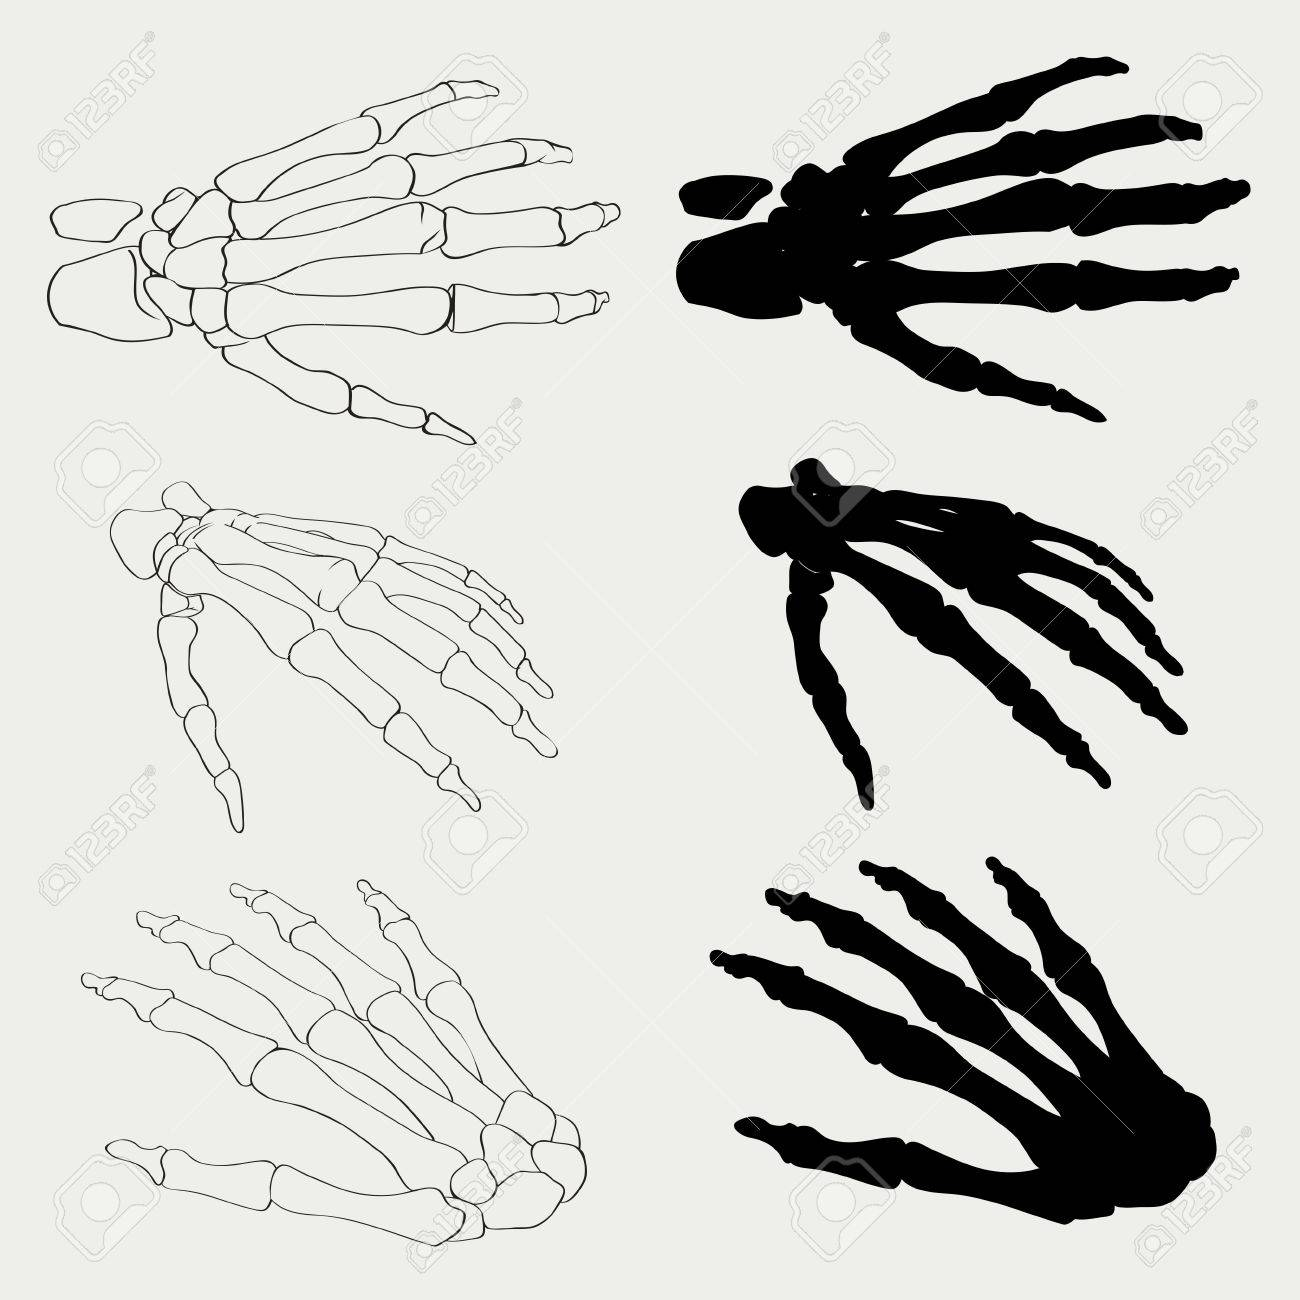 Human Hand Bones Anatomy Isolated Vector Illustration. Black ...